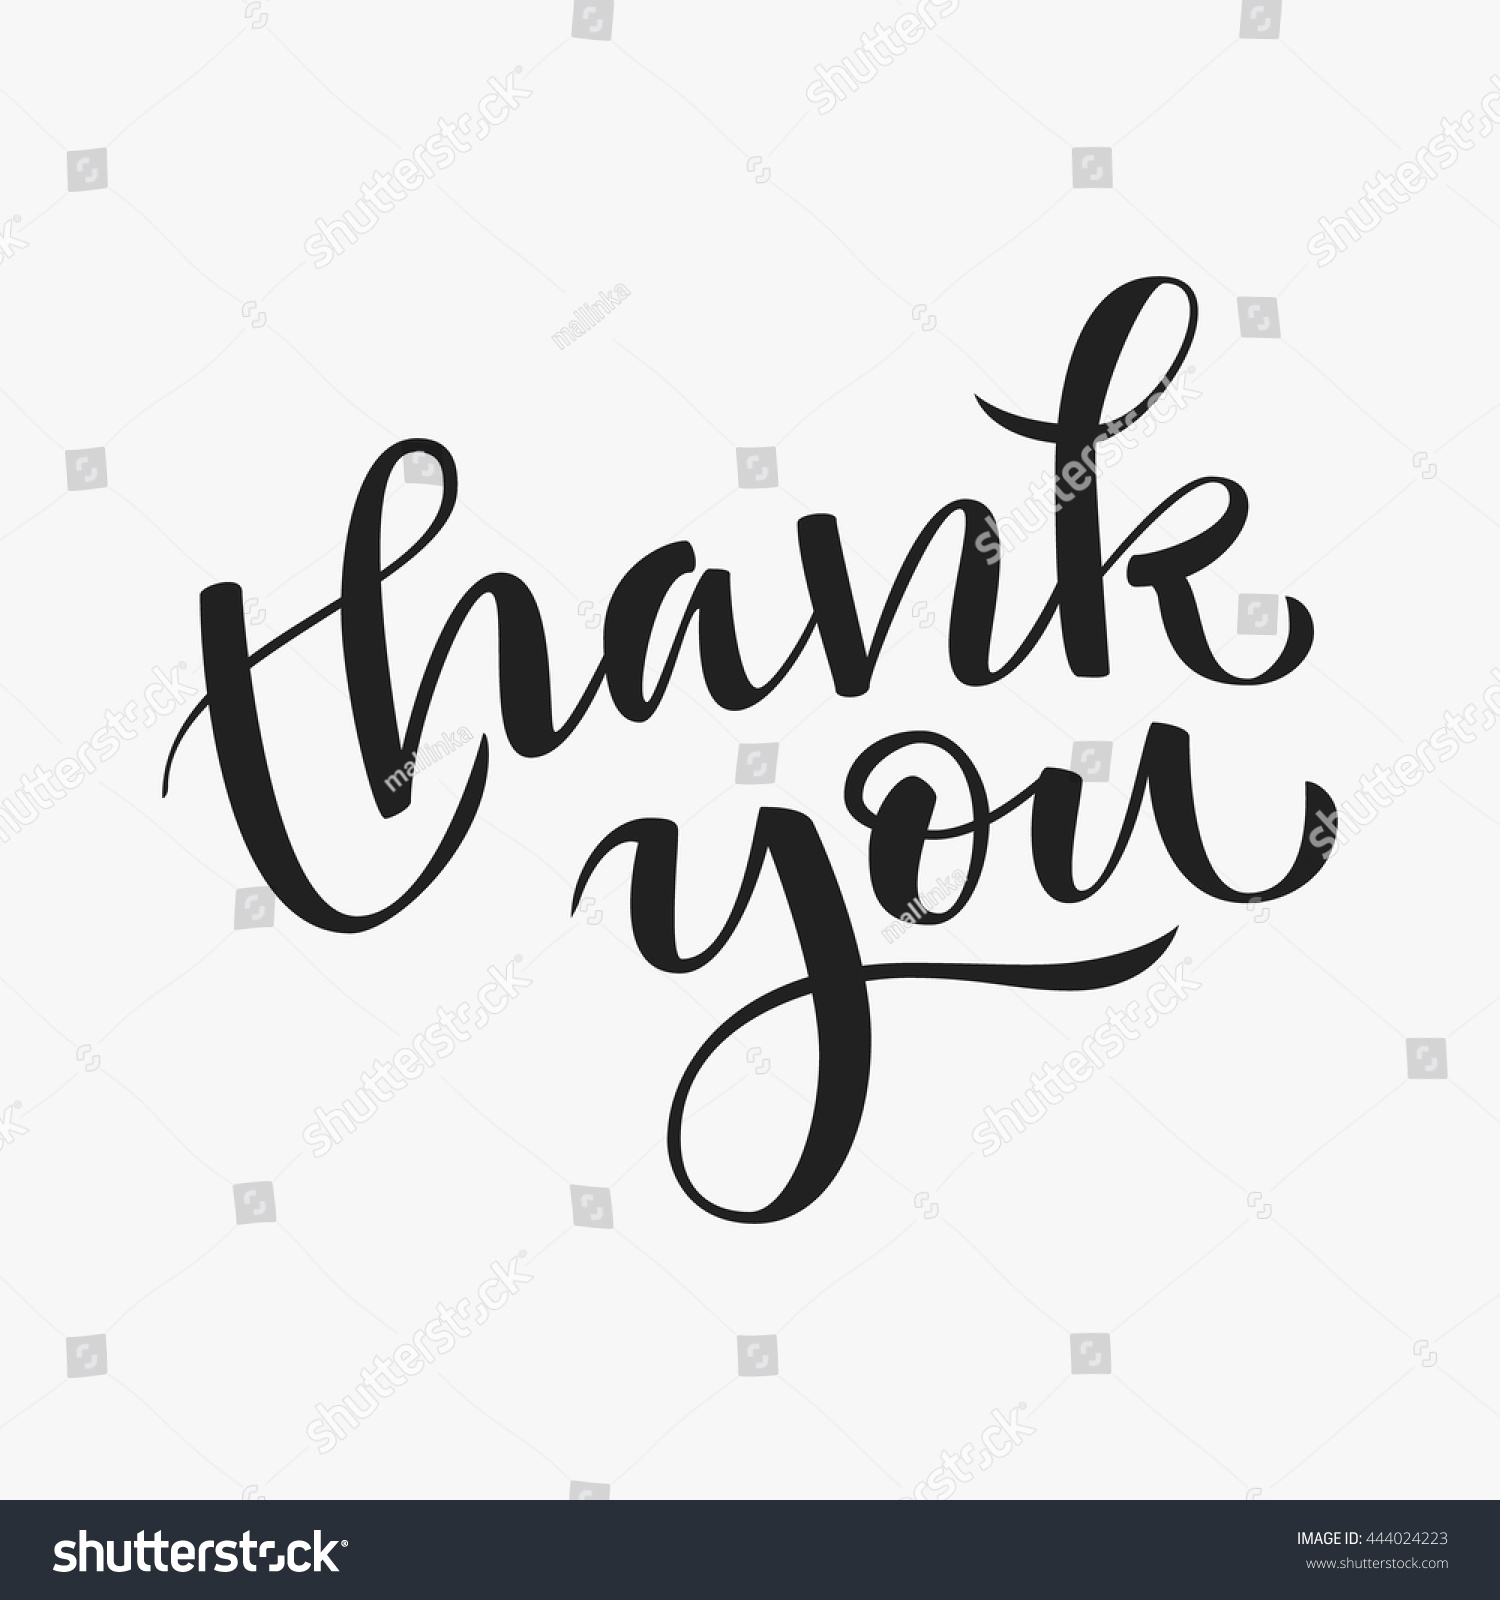 Thank you modern calligraphy hand drawn stock vector